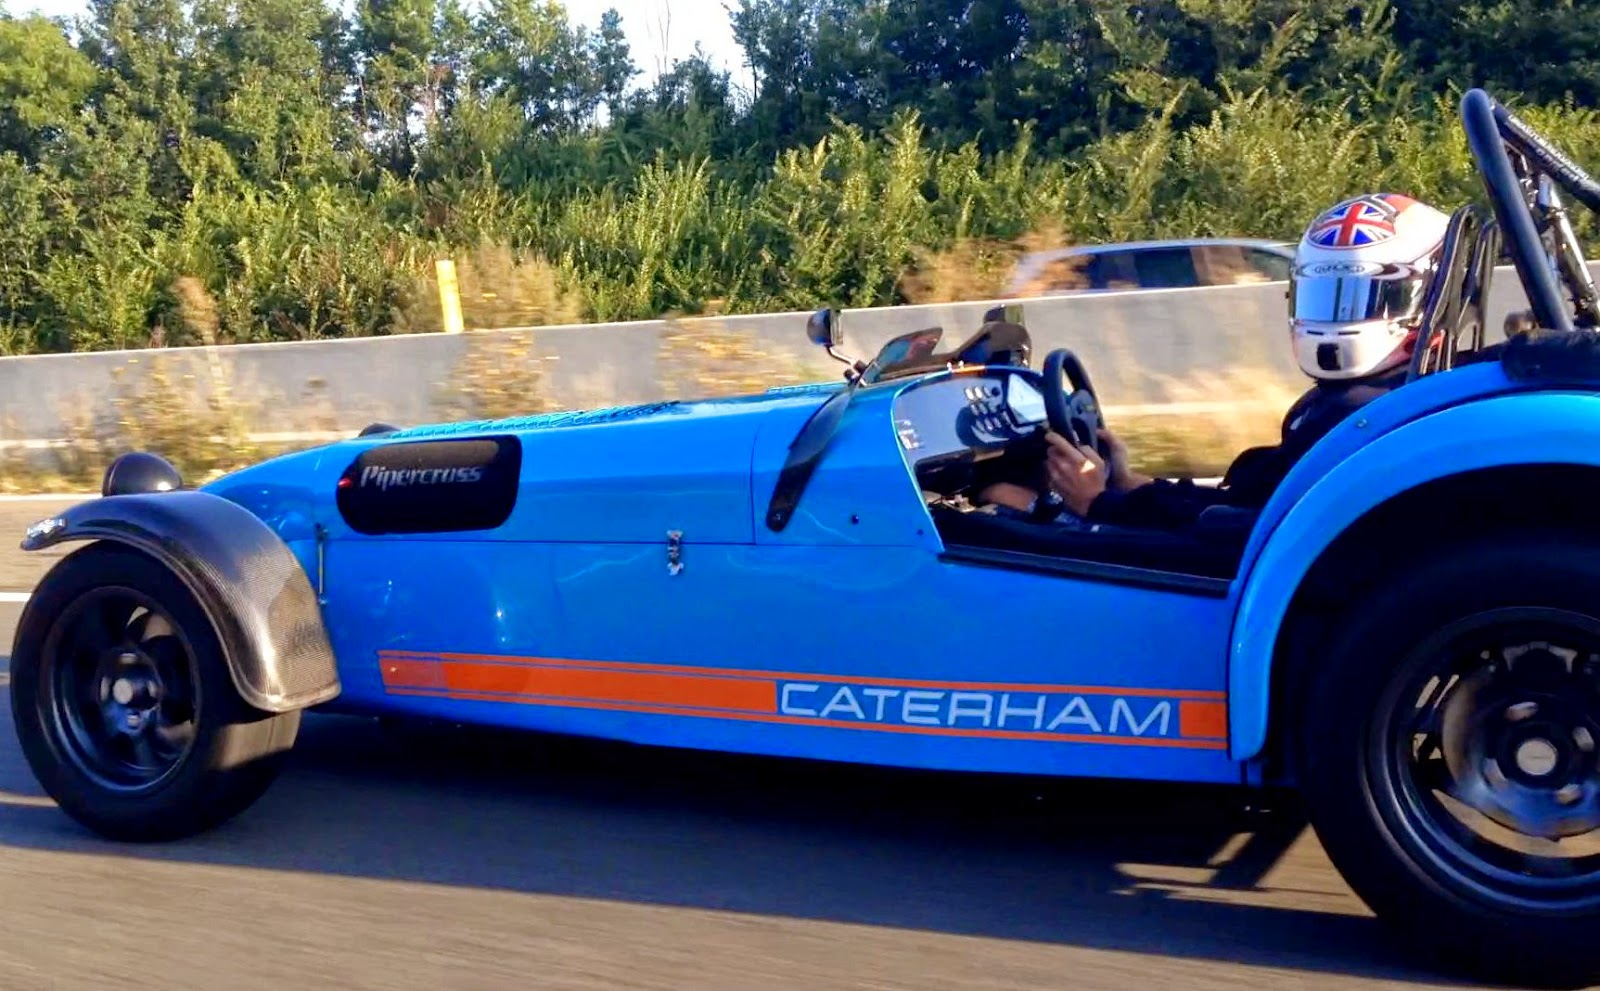 Me driving my Caterham R500